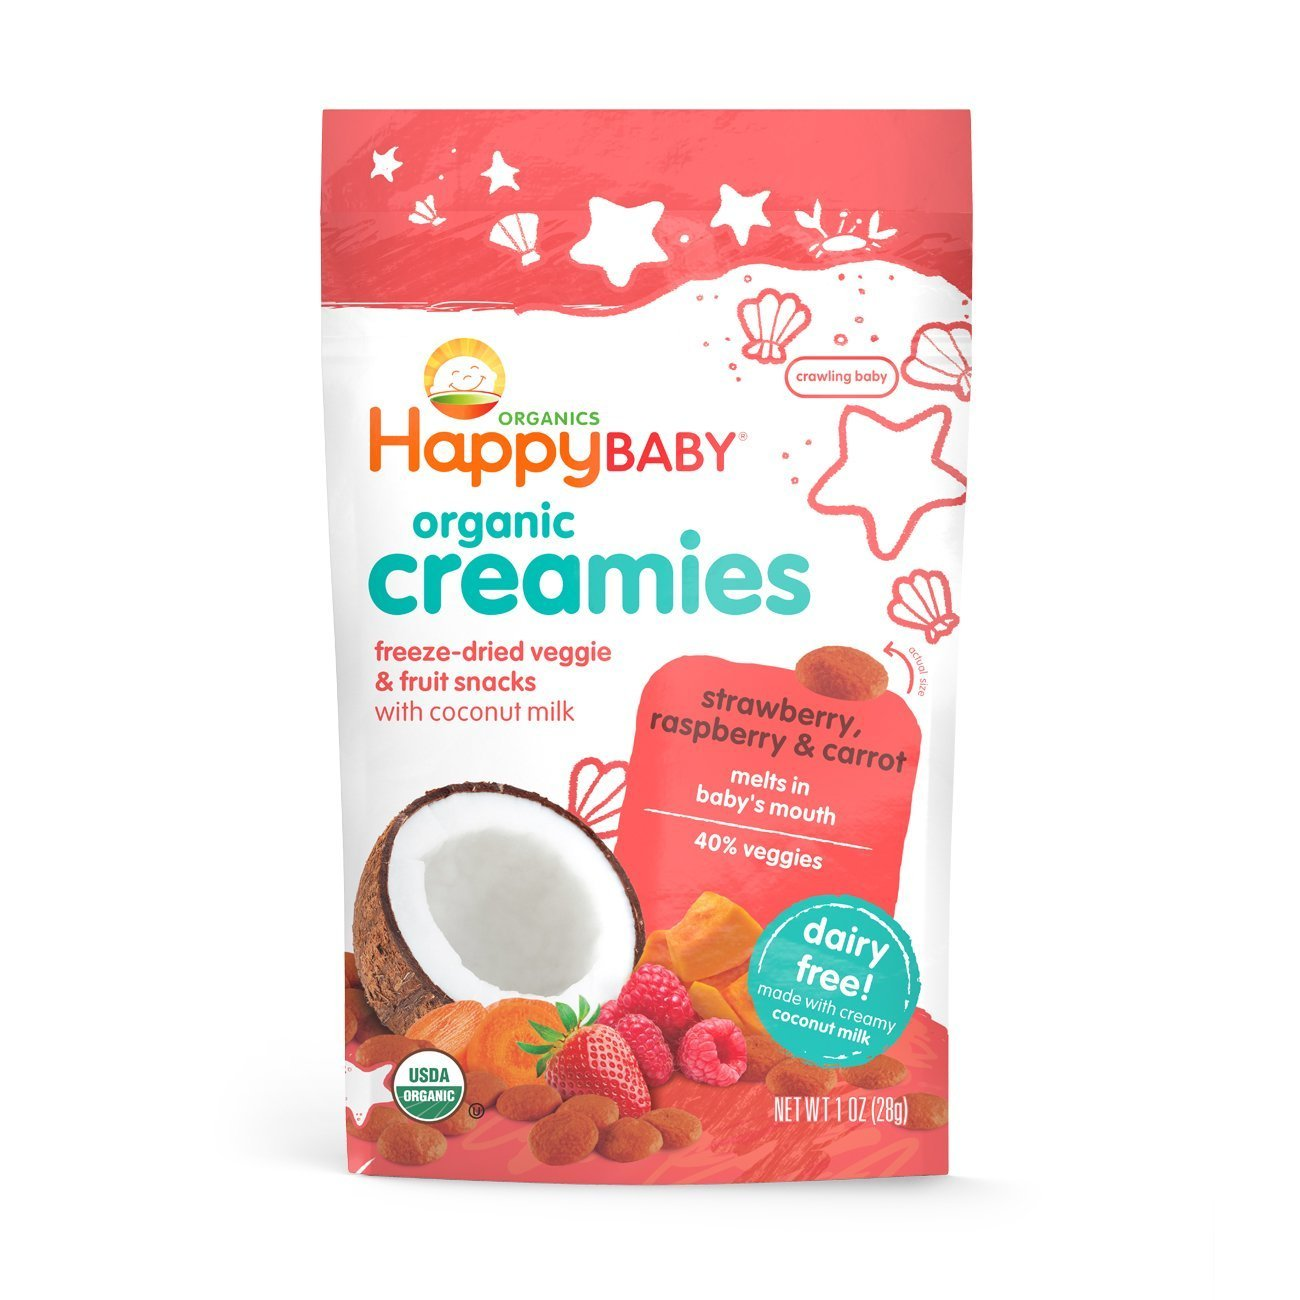 Happy Baby Organic Creamies Freeze-Dried Veggie & Fruit Snacks with Coconut Milk Strawberry Raspberry & Carrot, 1 Ounce Bag Dairy Free Baby or Toddler Snacks, Organic Non-GMO Gluten Free Kosher by Happy Baby